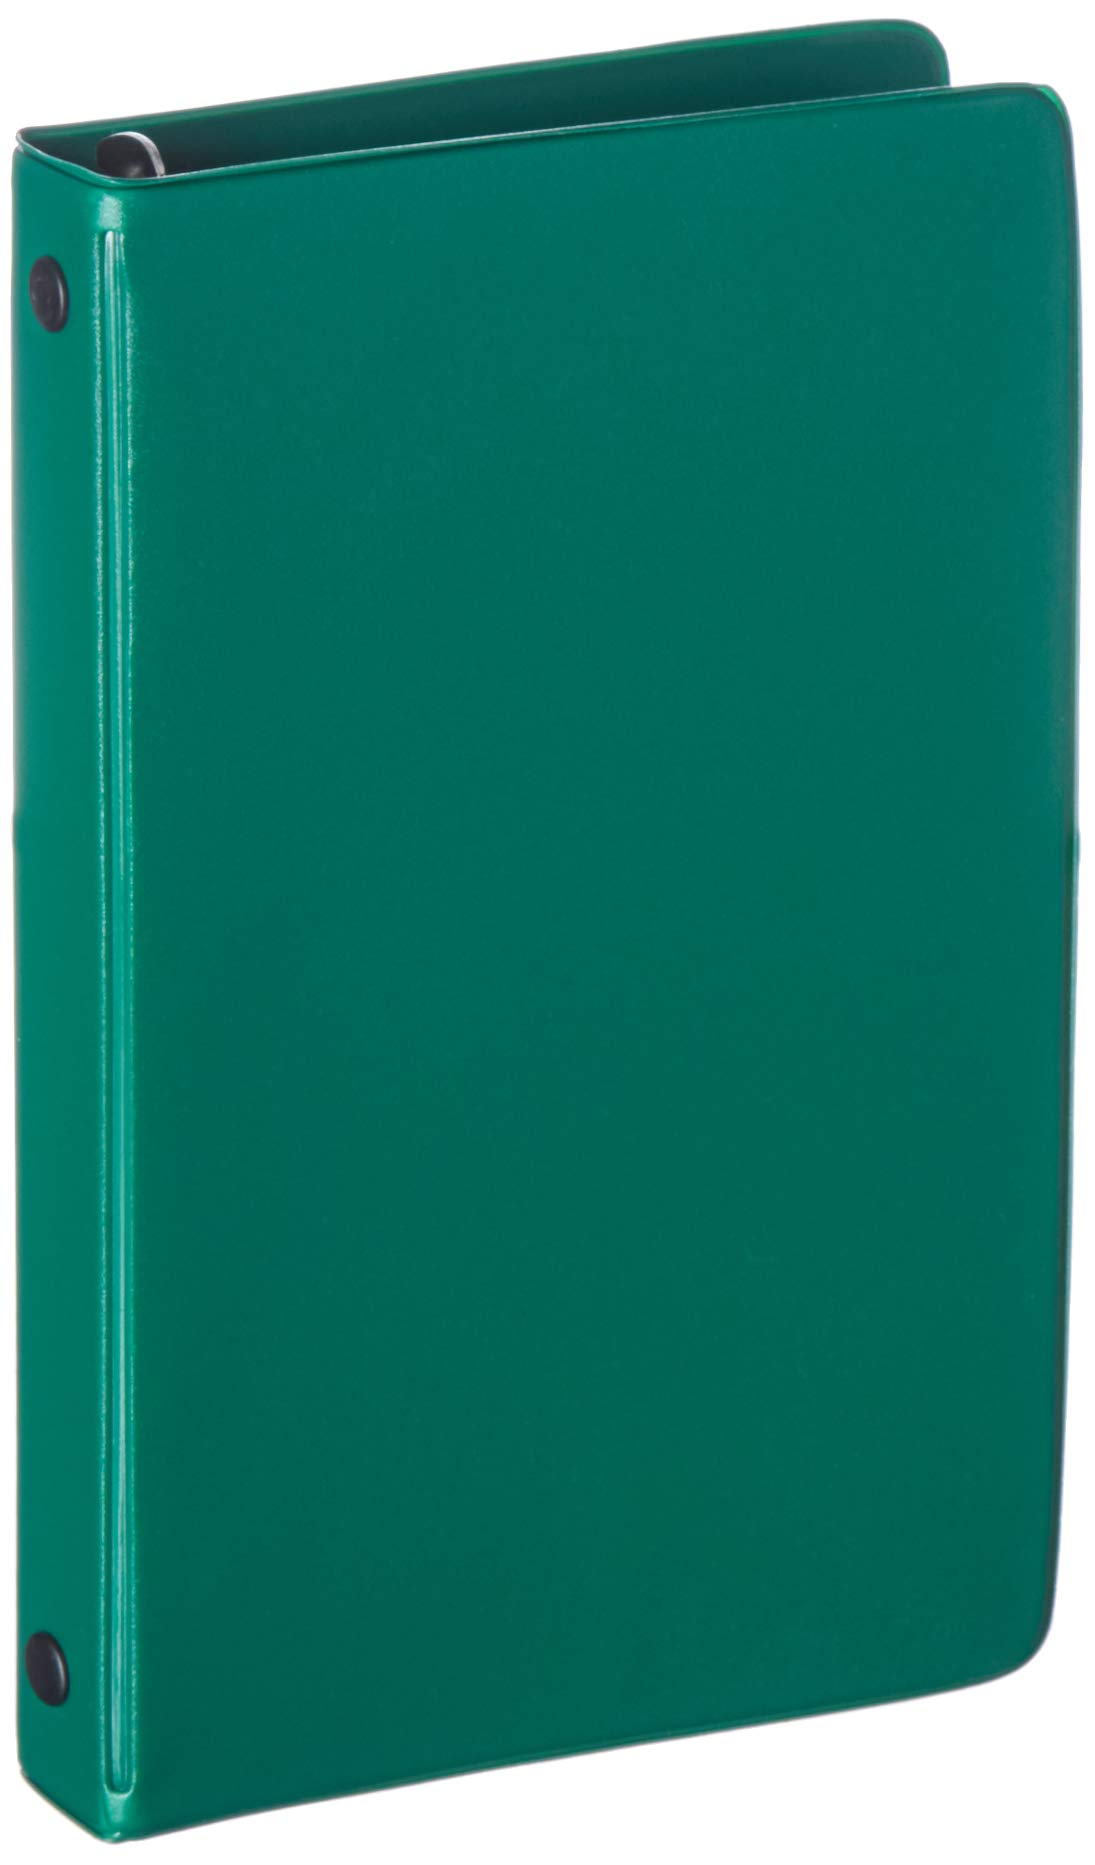 Mead Loose-Leaf Memo Book, 6 3/4 x 3 3/4'', 6-Ring, 1/2-Inch, 40 Pages, Assorted - Color May Vary, Pack Of 4